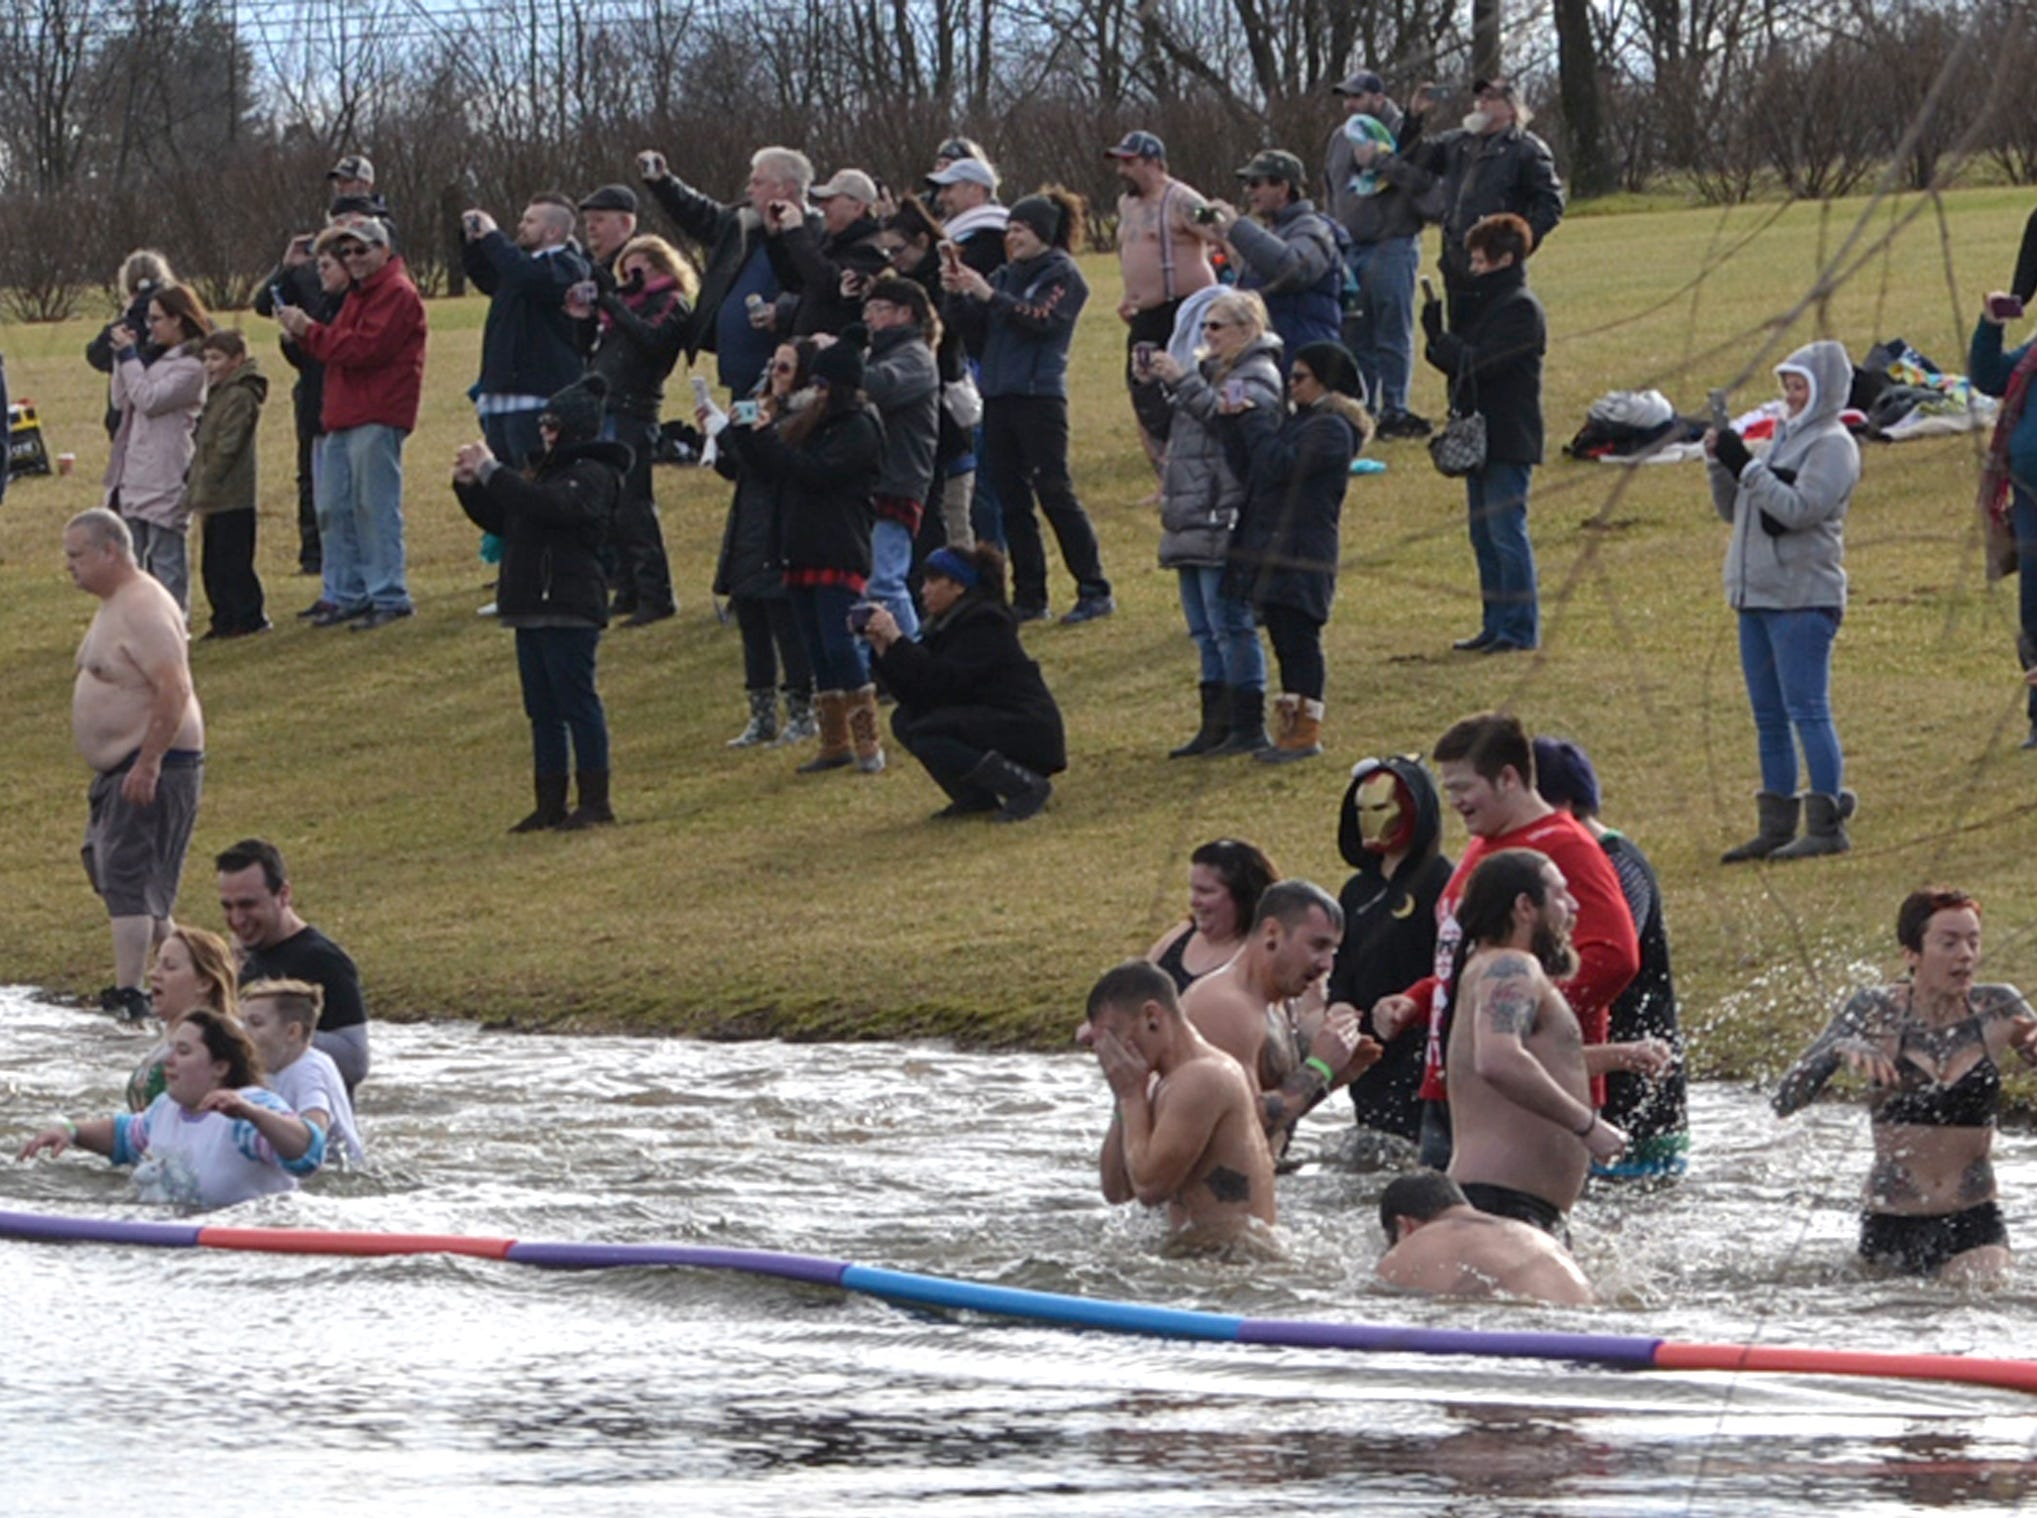 The 29th Annual Polar Bear Club Plunge, a benefit event for Developmental & Disability Services of Lebanon Valley, was held on January 1, 2019 at Wind in the Willows in Grantville, PA.